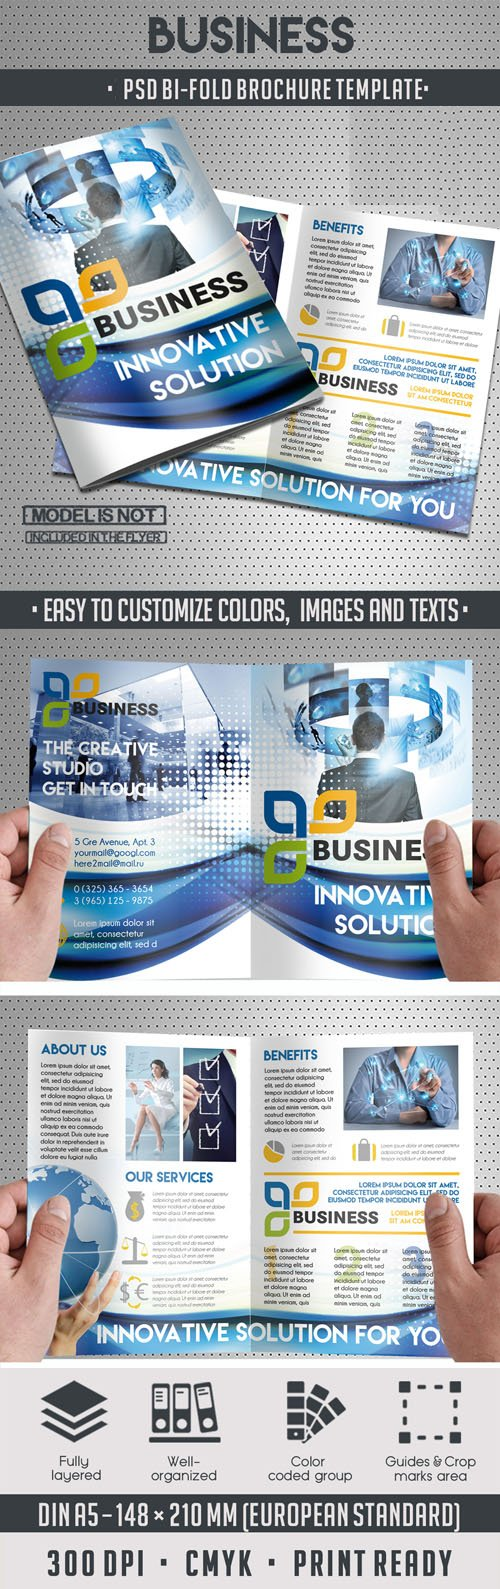 Corporate Business Bi-Fold Brochure PSD Template